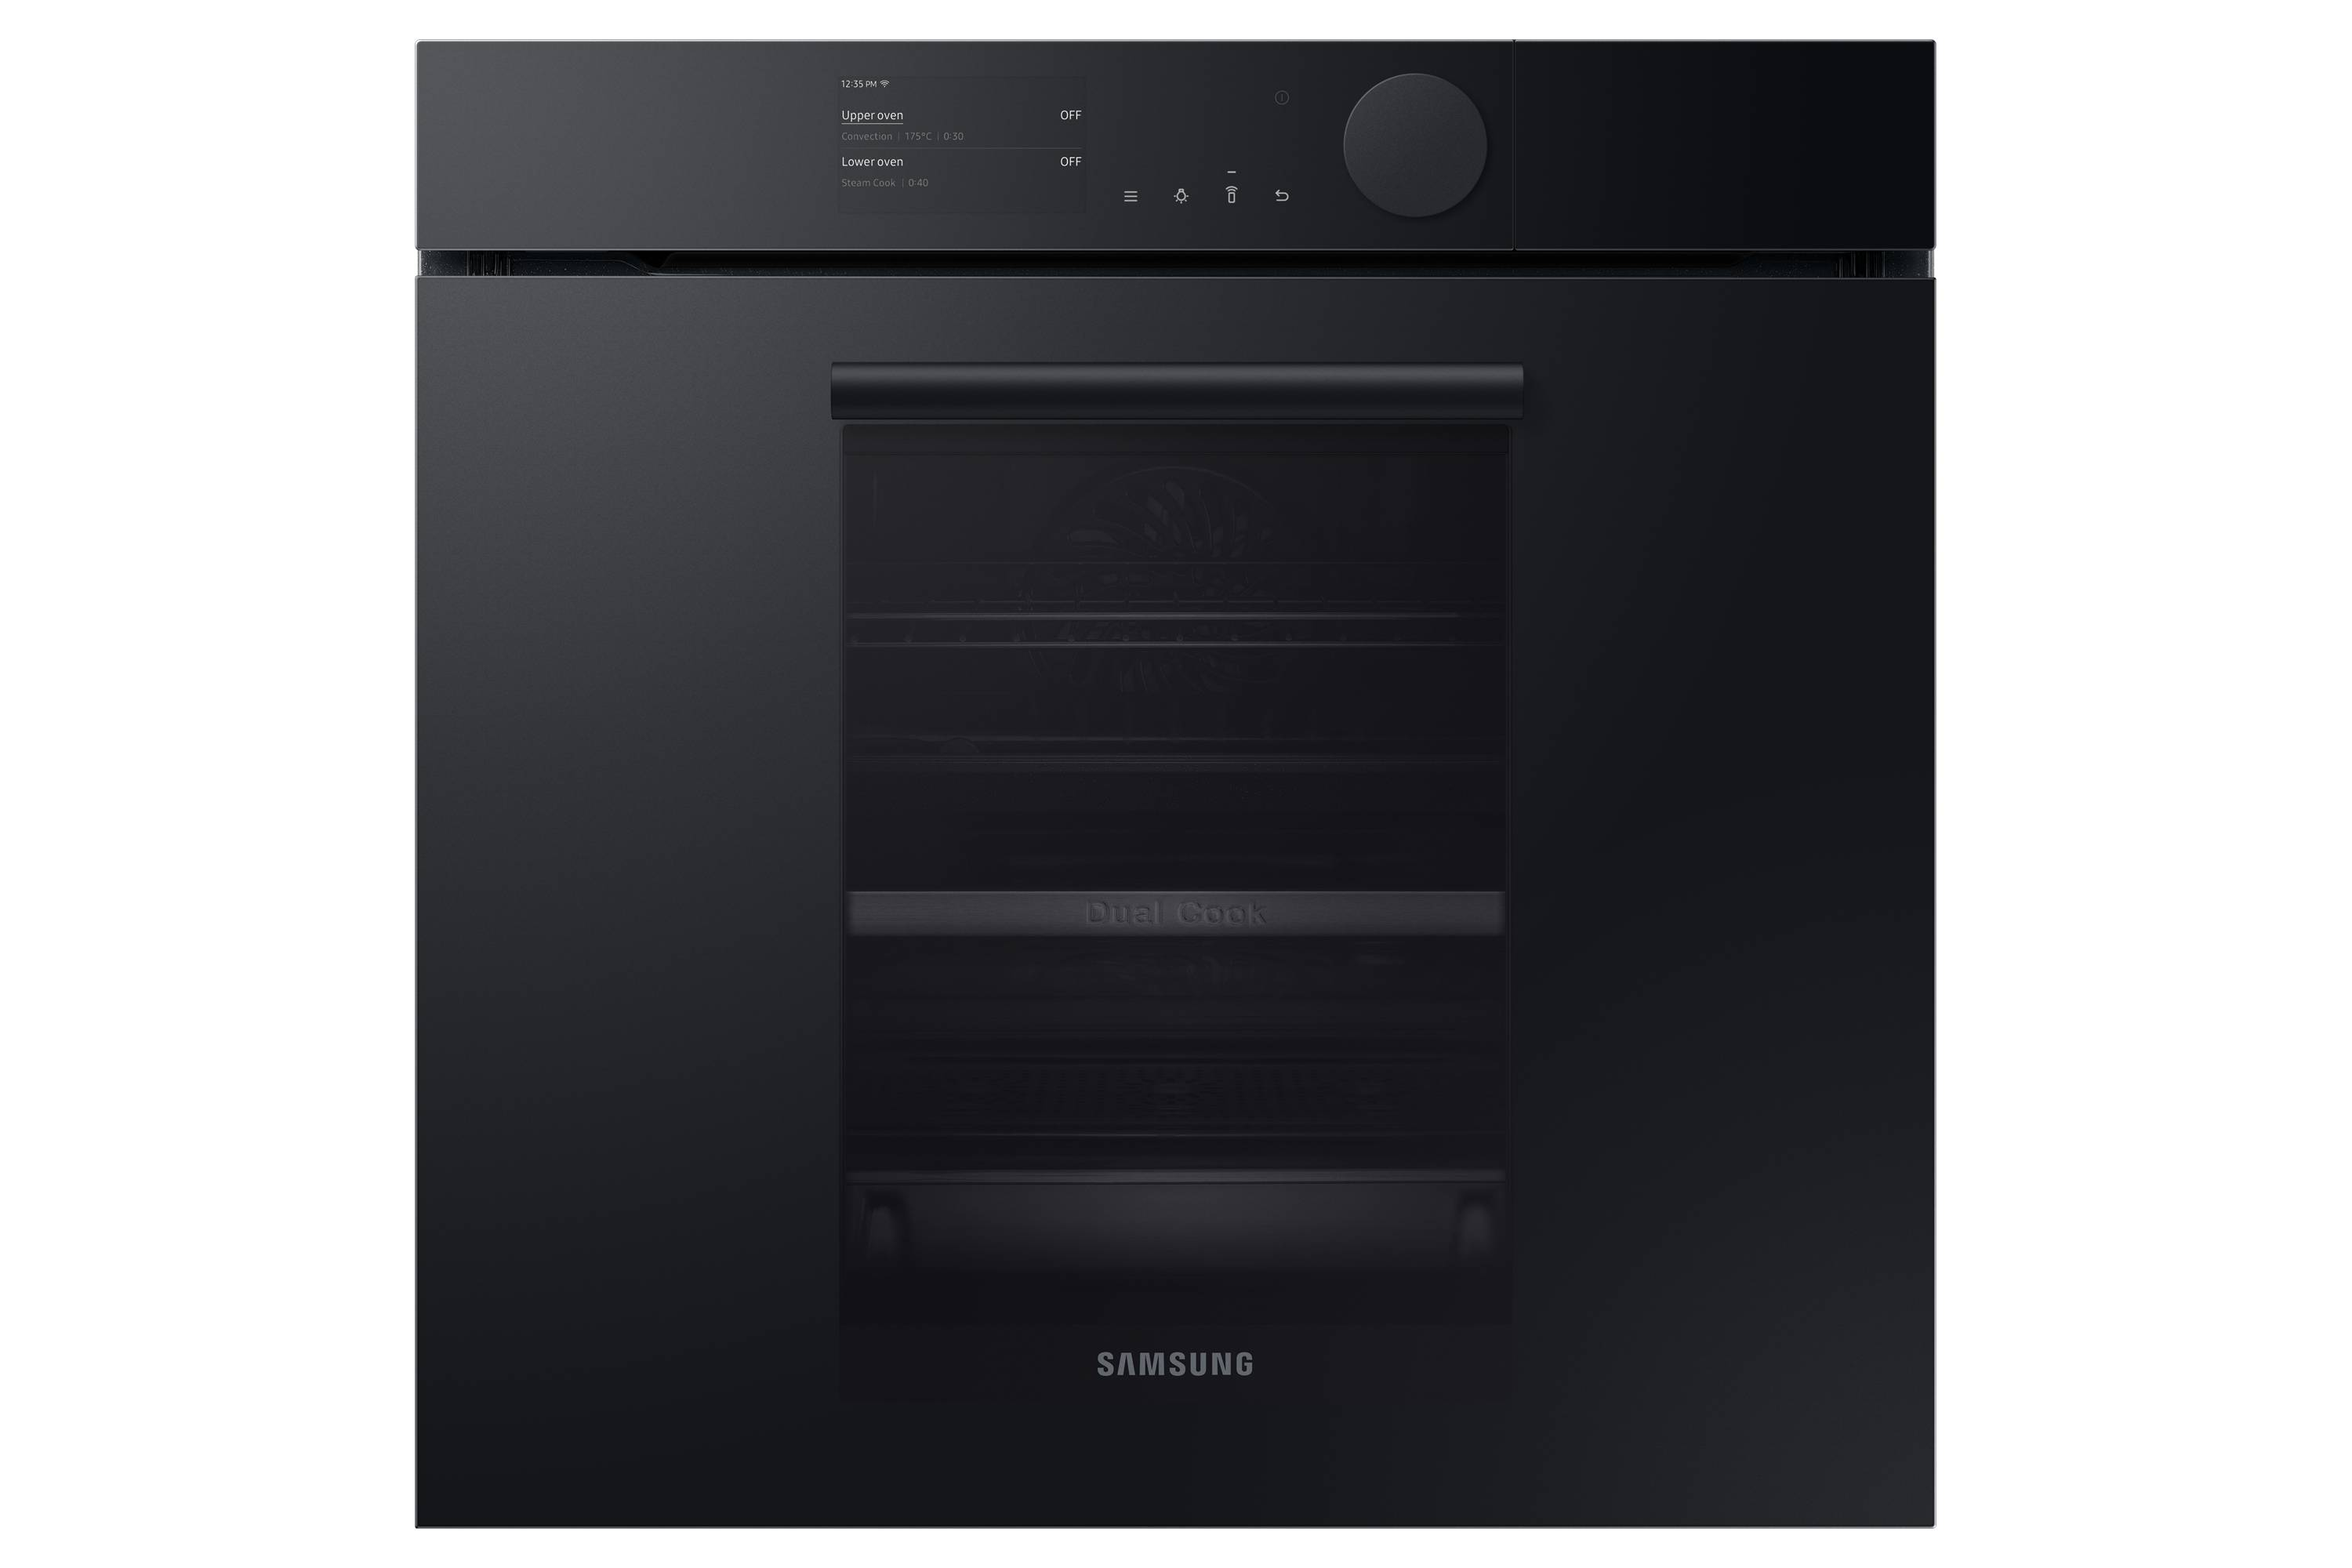 Samsung Infinite Range Oven with Dual Cook Steam NV75T9979CD/EU in Black